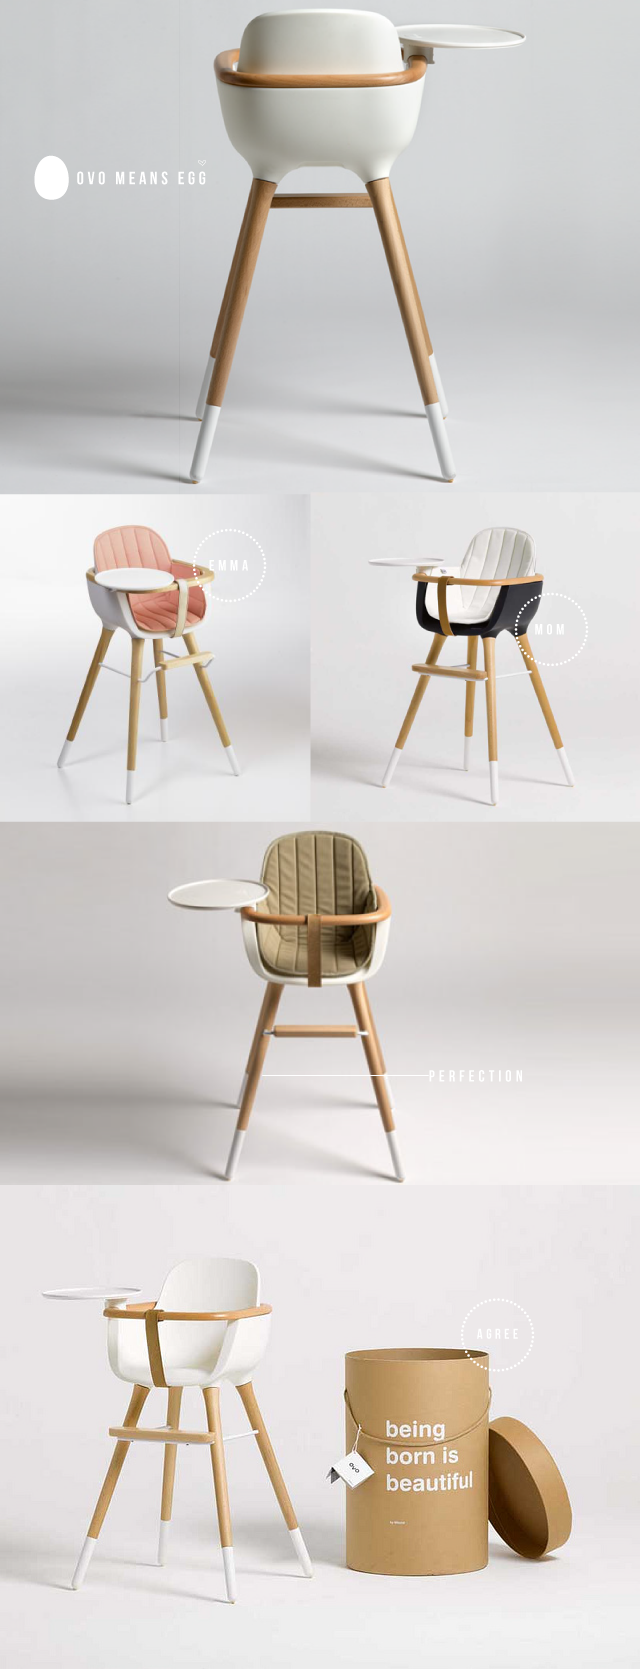 Egg Baby High Chair High Chair By Ovo Means Egg Rest Taking A Breather Componets